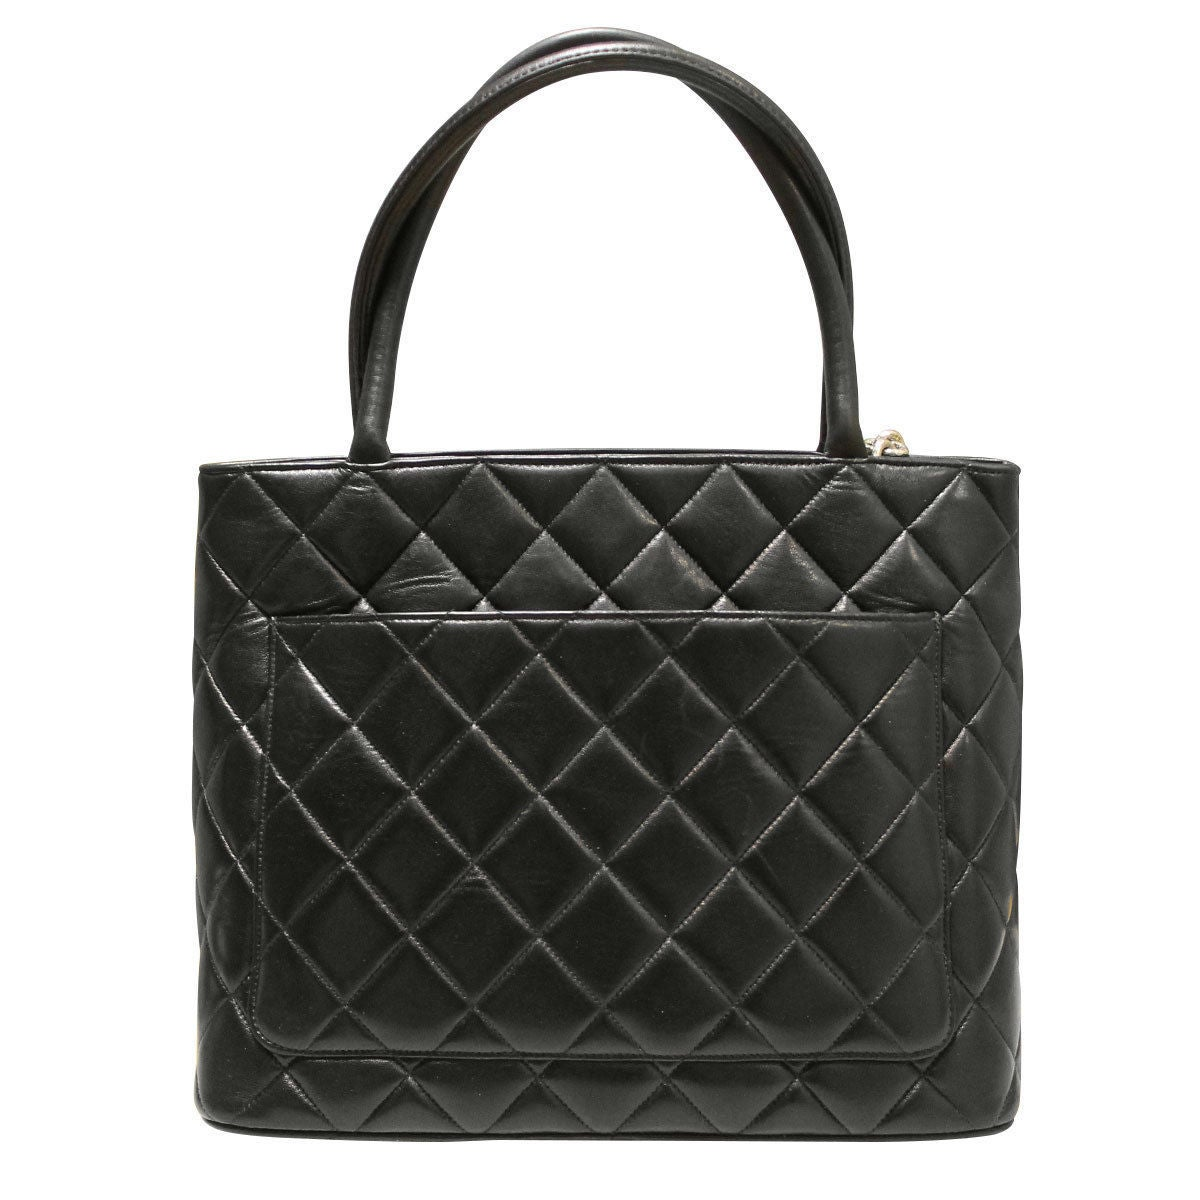 17b83acdc813e7 Chanel Bag Collection 2002 | Stanford Center for Opportunity Policy ...